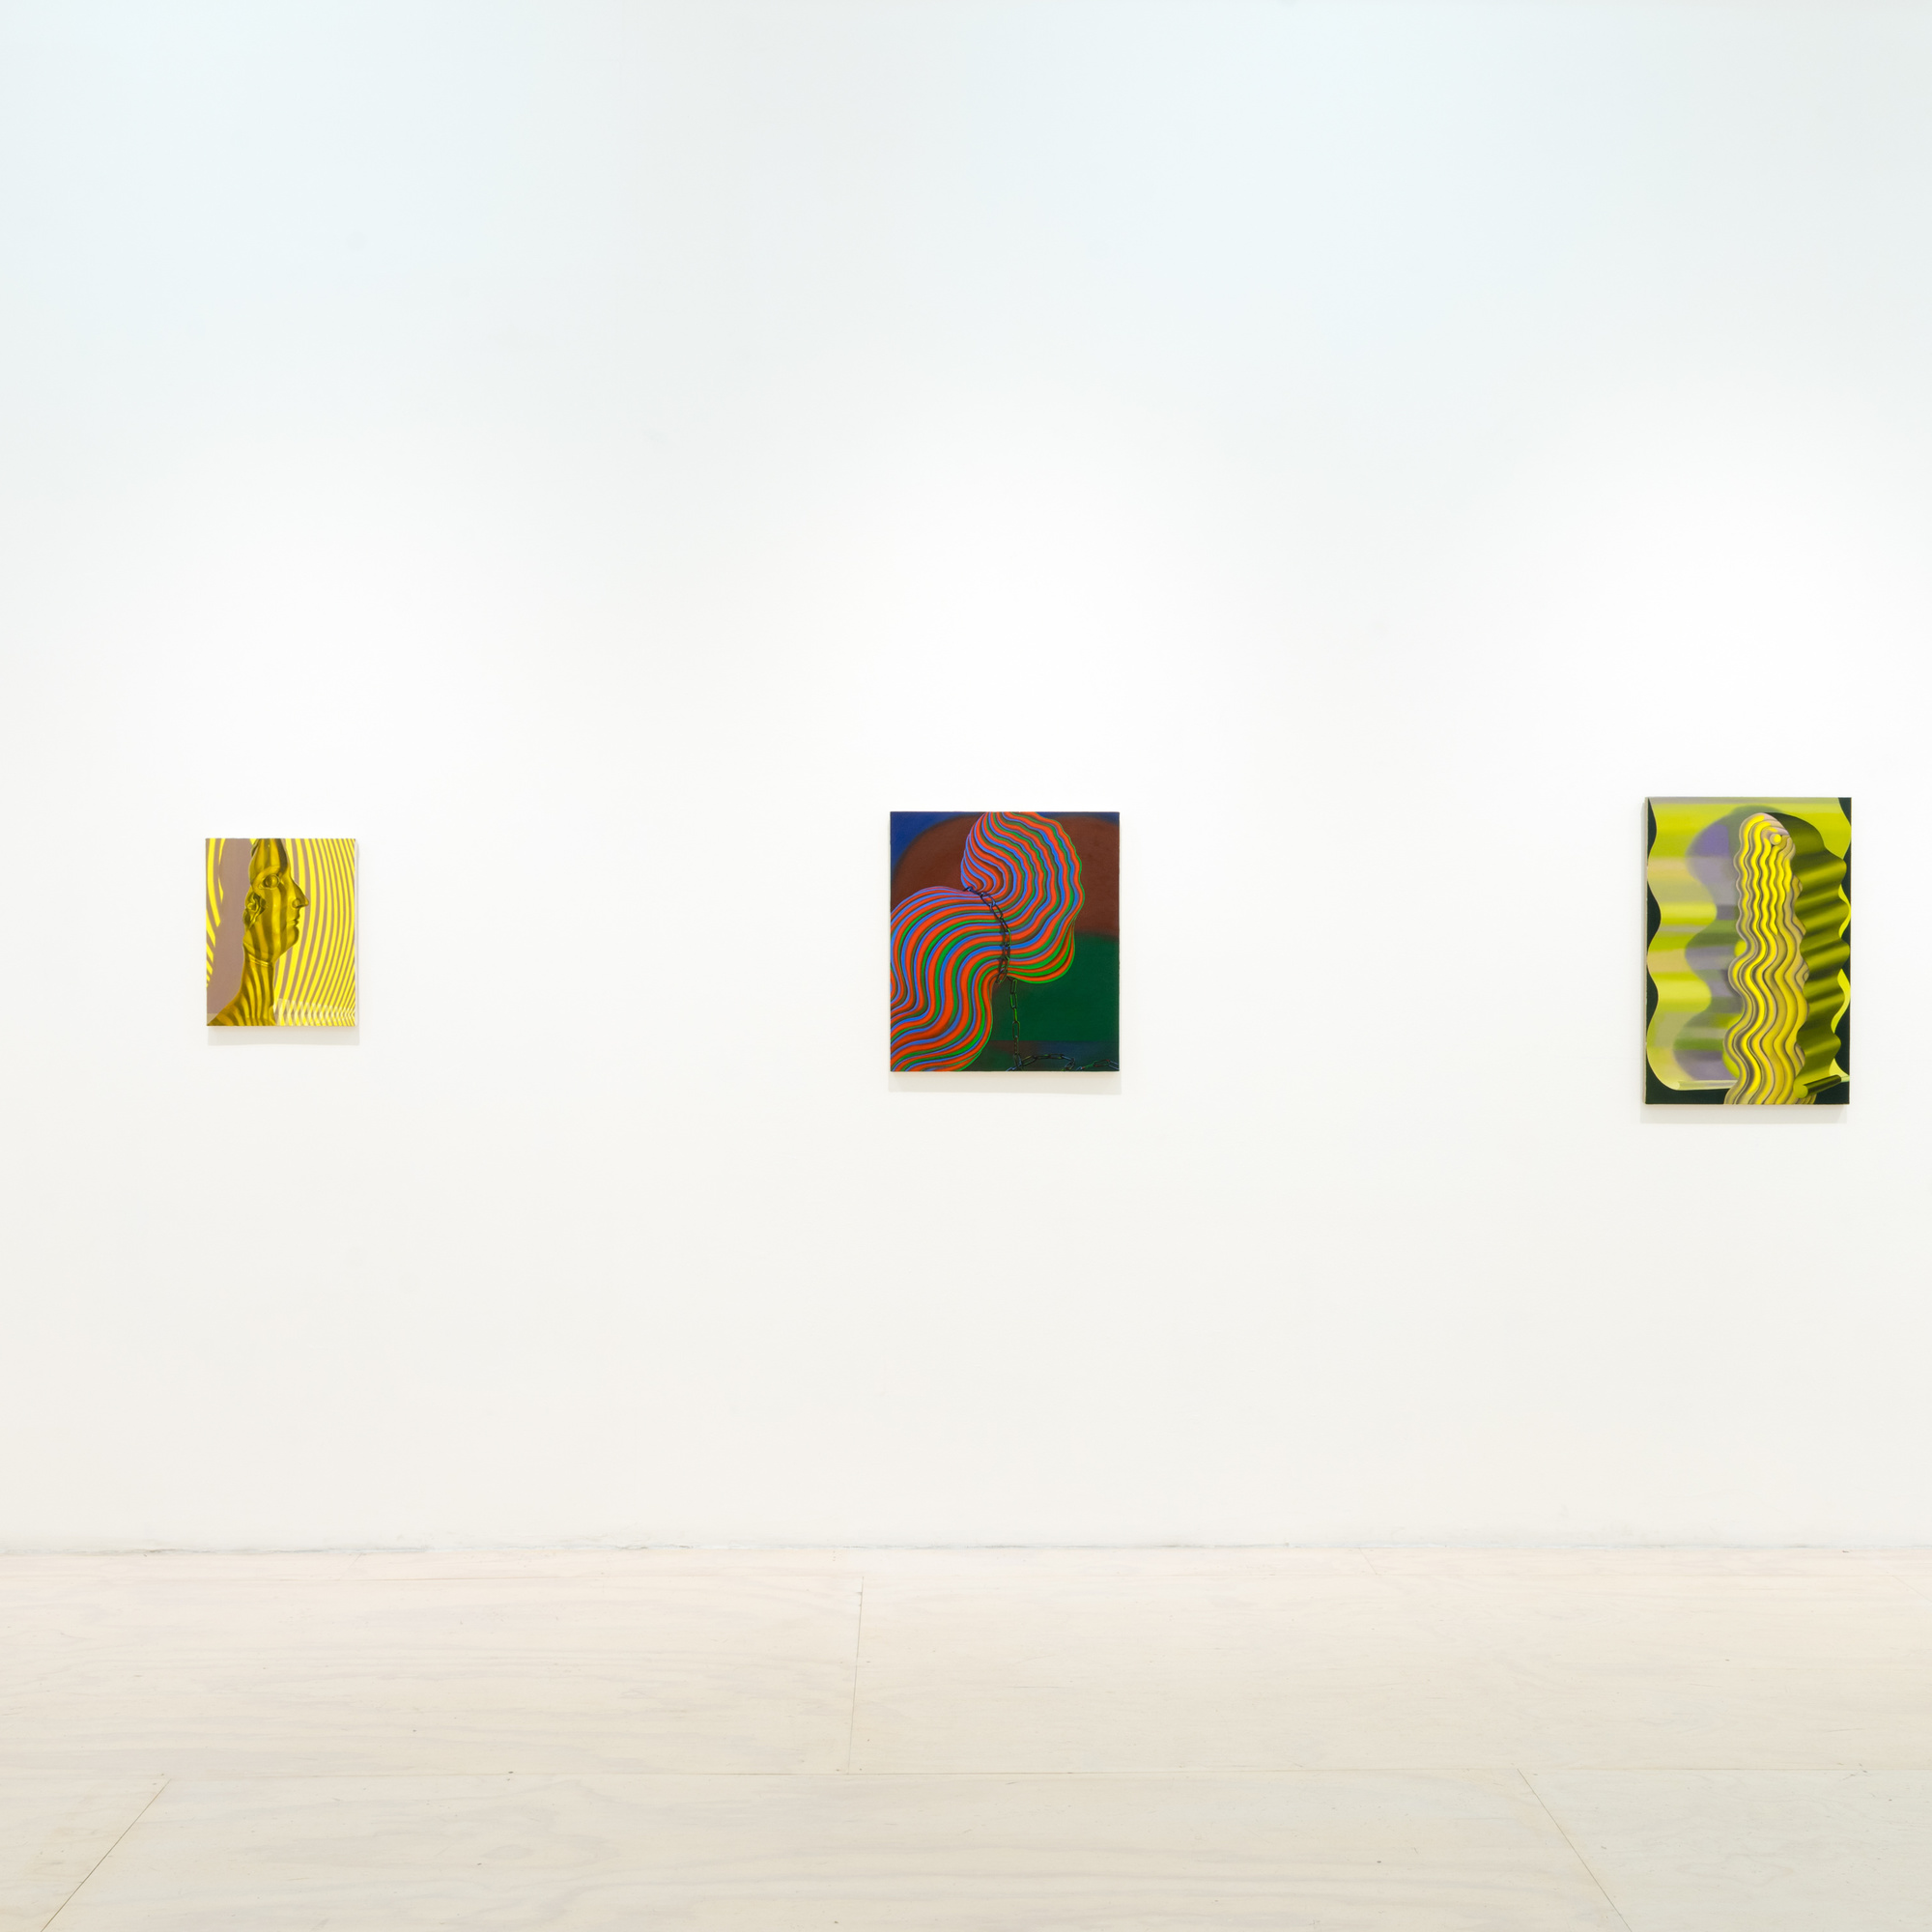 Installation view of Sascha Braunig: Shivers, MoMA PS1, October 23, 2016–March 12, 2017. Shown, from left: Sascha Braunig. Lashes. 2011. Oil on panel over canvas. Zabludowicz Collection; Gold Warp I. 2010. Oil on canvas. Private collection; Bridle. 2013. Oil on canvas over panel. Private collection; Shade. 2014. Oil on linen over panel. Collection of Scott J. Lorinsky; Feeder. 2014. Oil on canvas over panel. Private collection. Photo: Pablo Enriquez